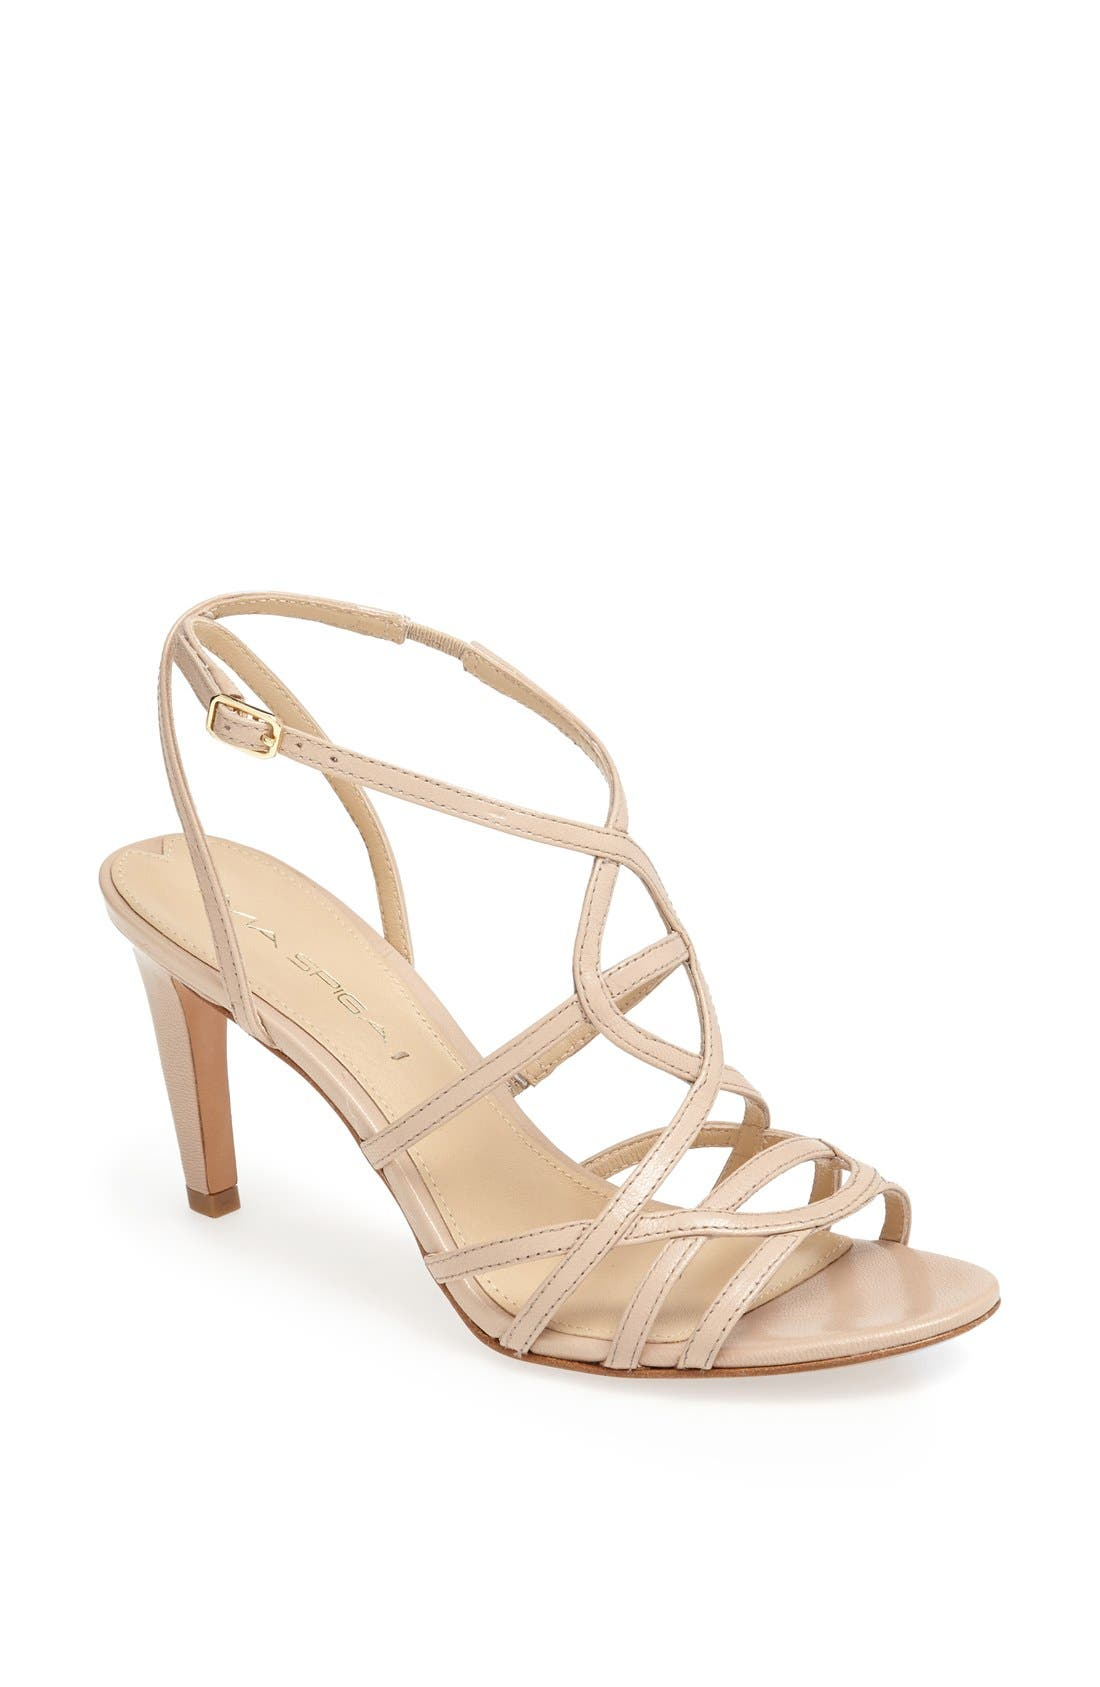 Alternate Image 1 Selected - Via Spiga 'Ima' Sandal (Nordstrom Exclusive)